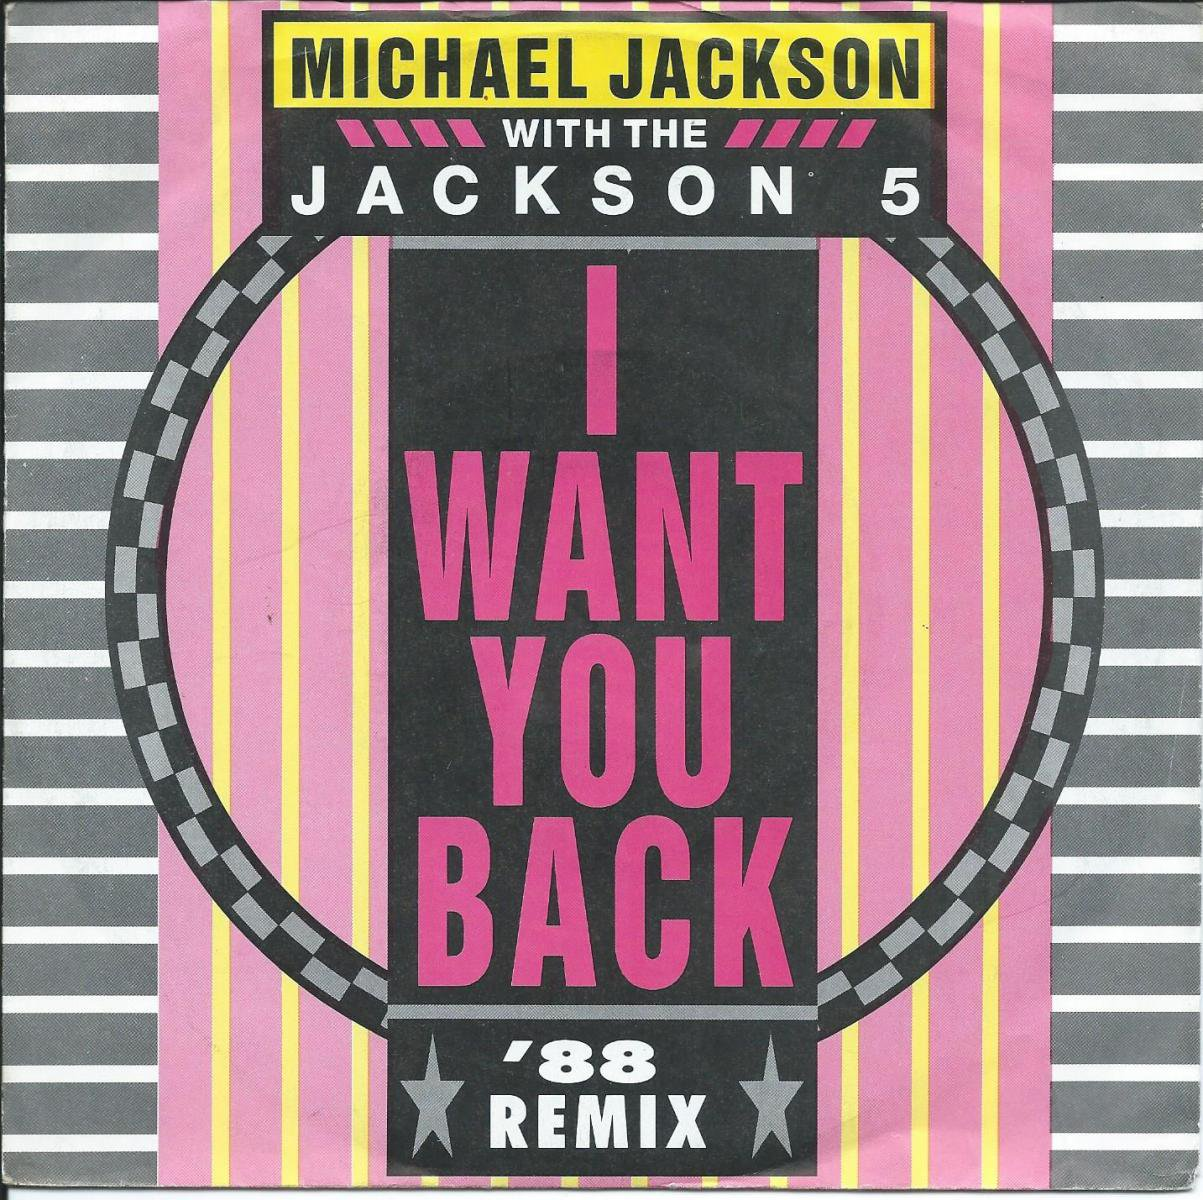 MICHAEL JACKSON WITH THE JACKSON 5 / I WANT YOU BACK '88 REMIX (7